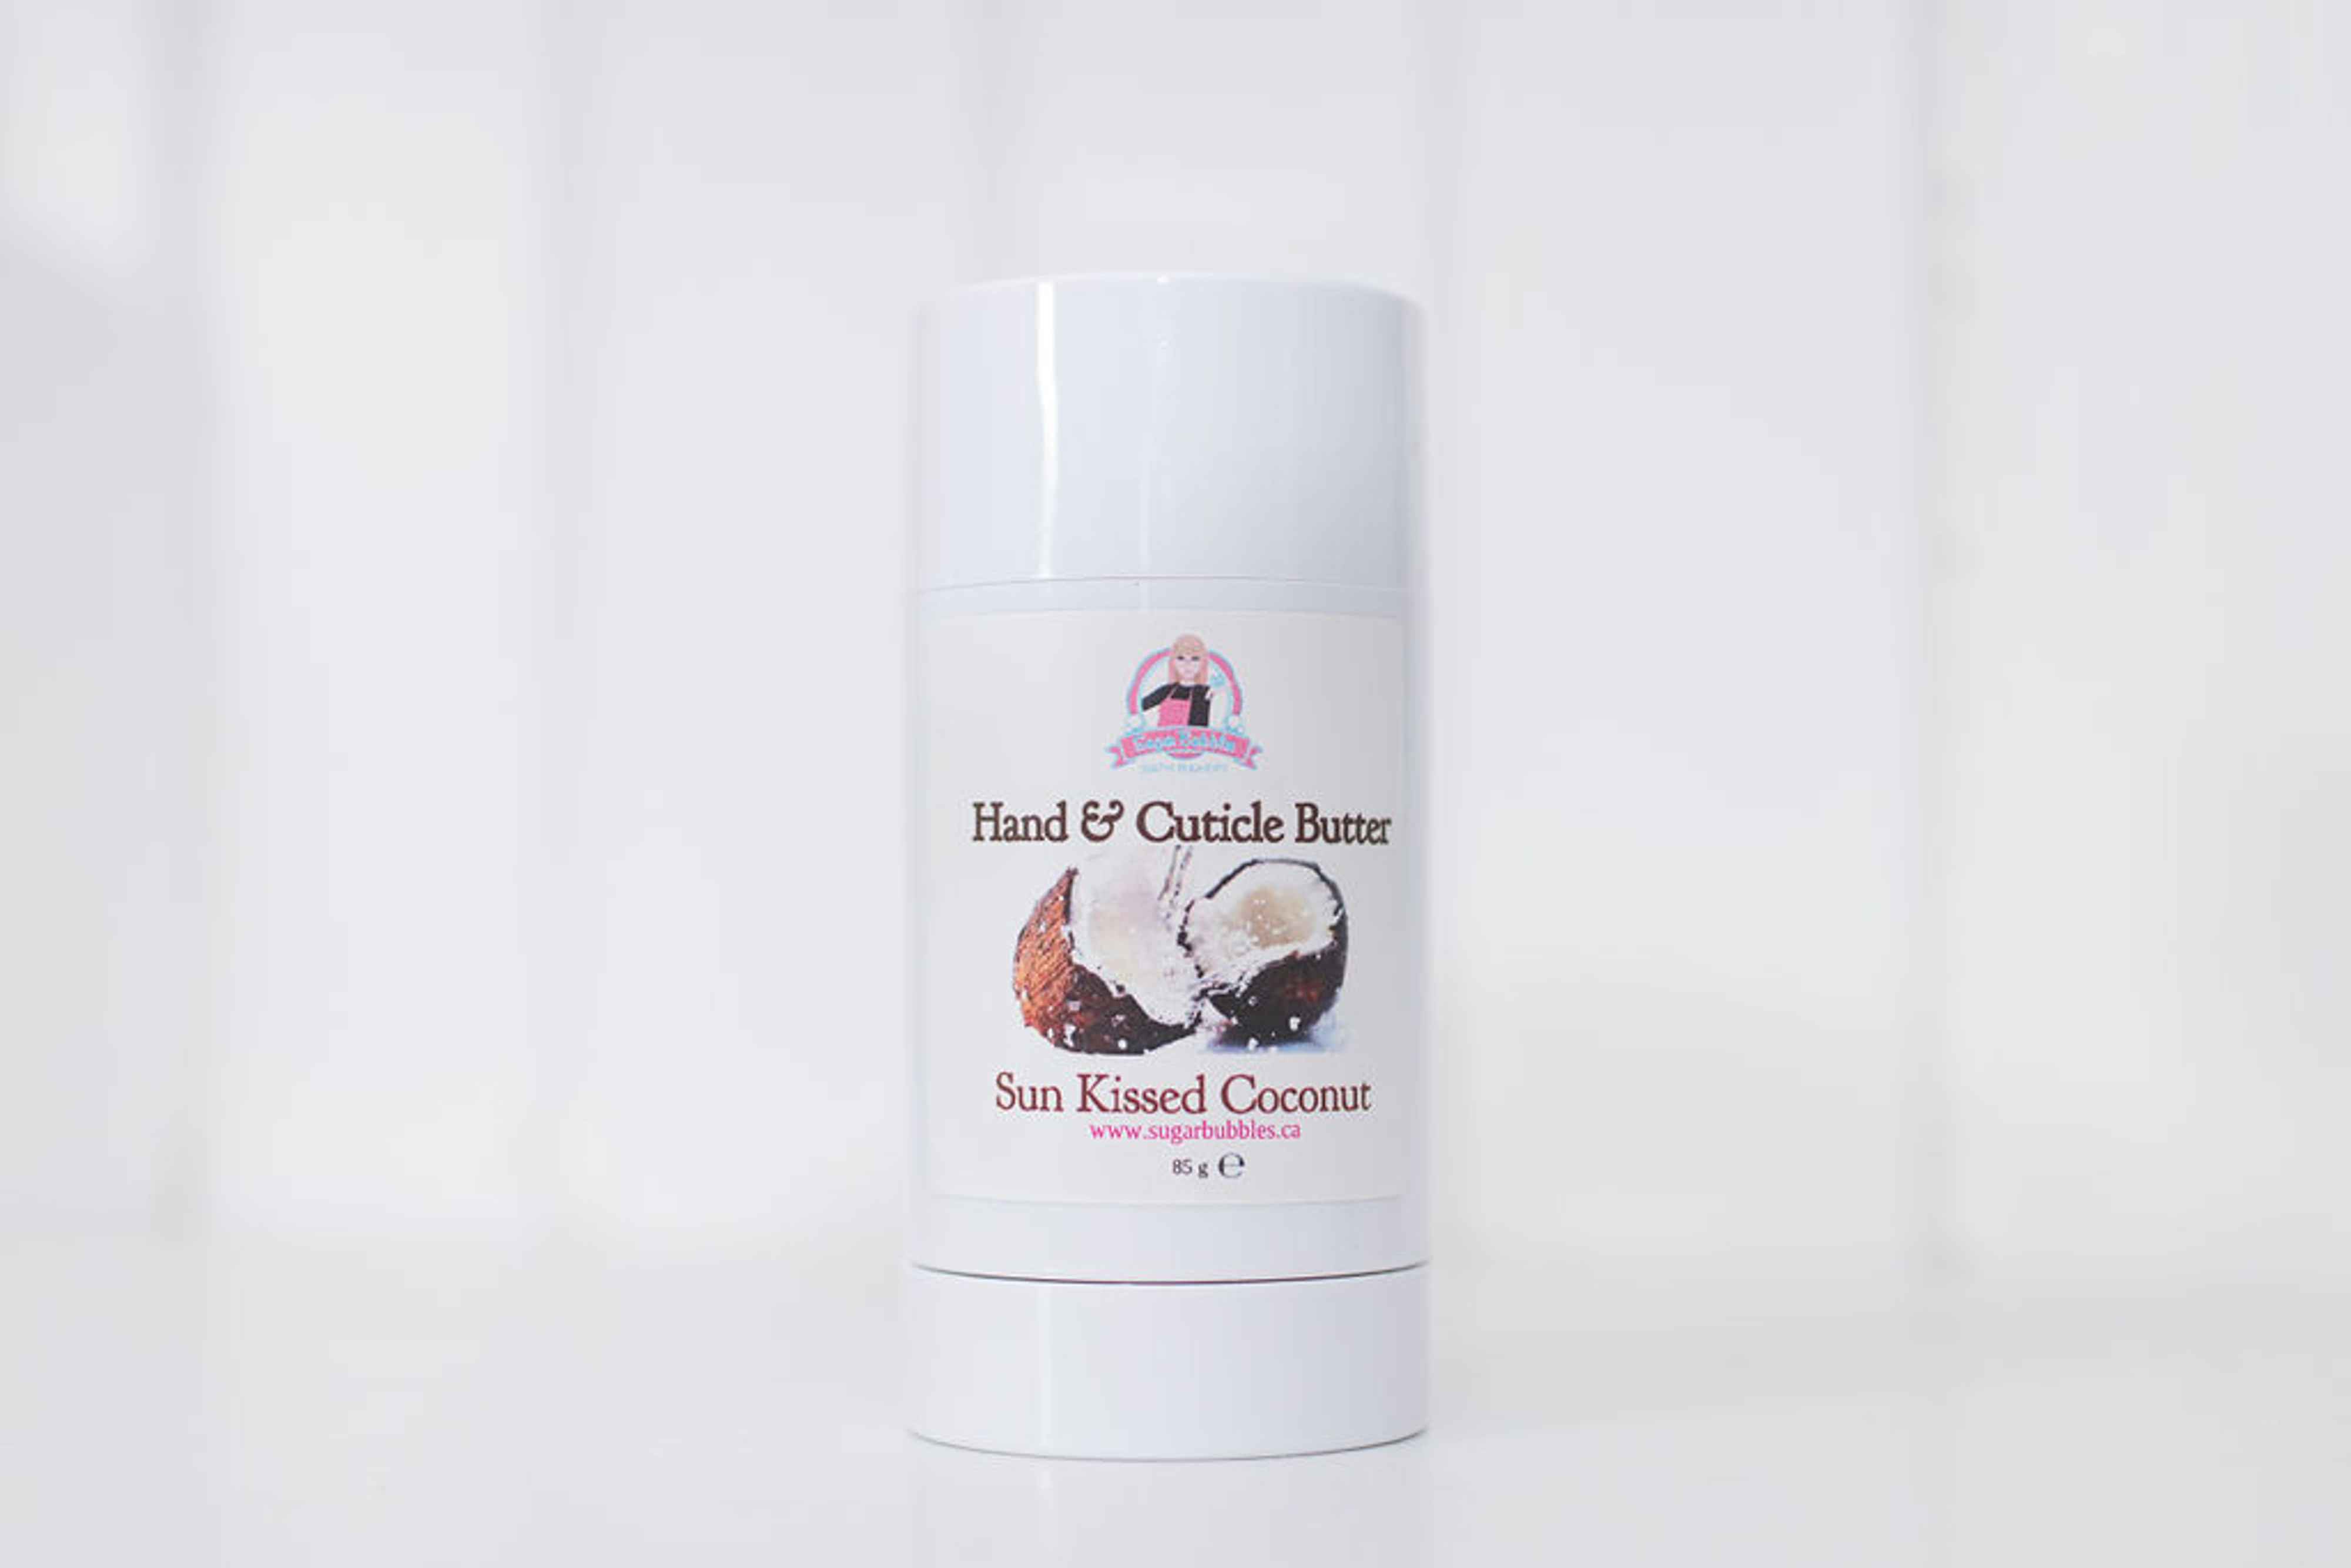 Hand & Body Butter (Glide-on smooth & buttery)